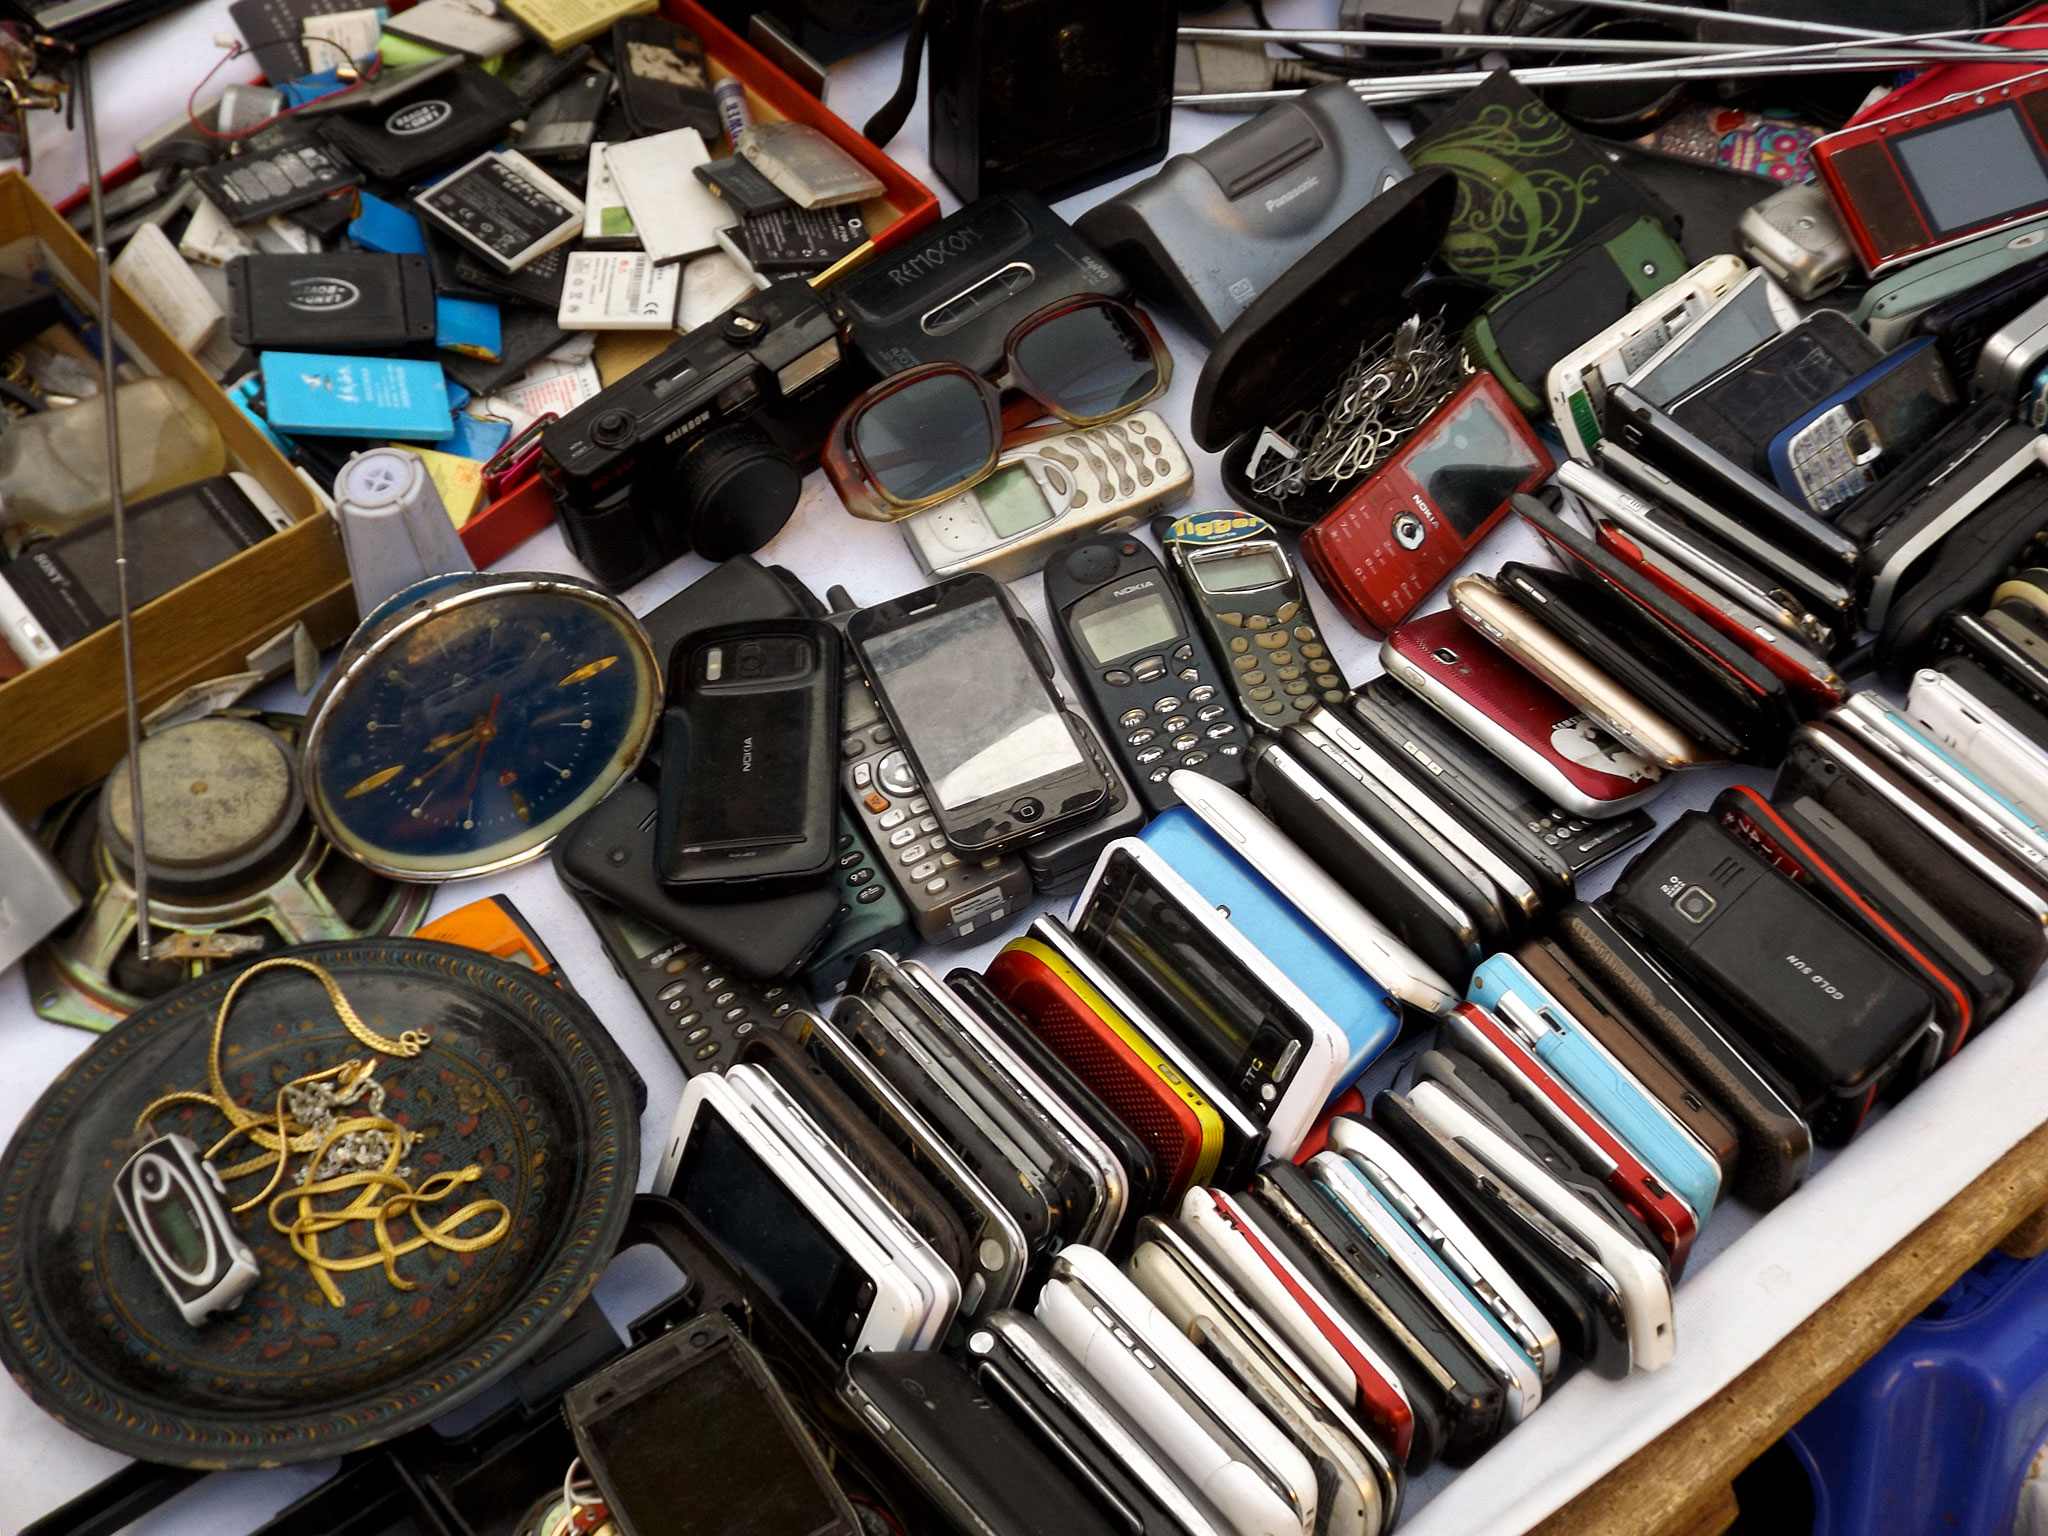 Phones for sale at a black market stand